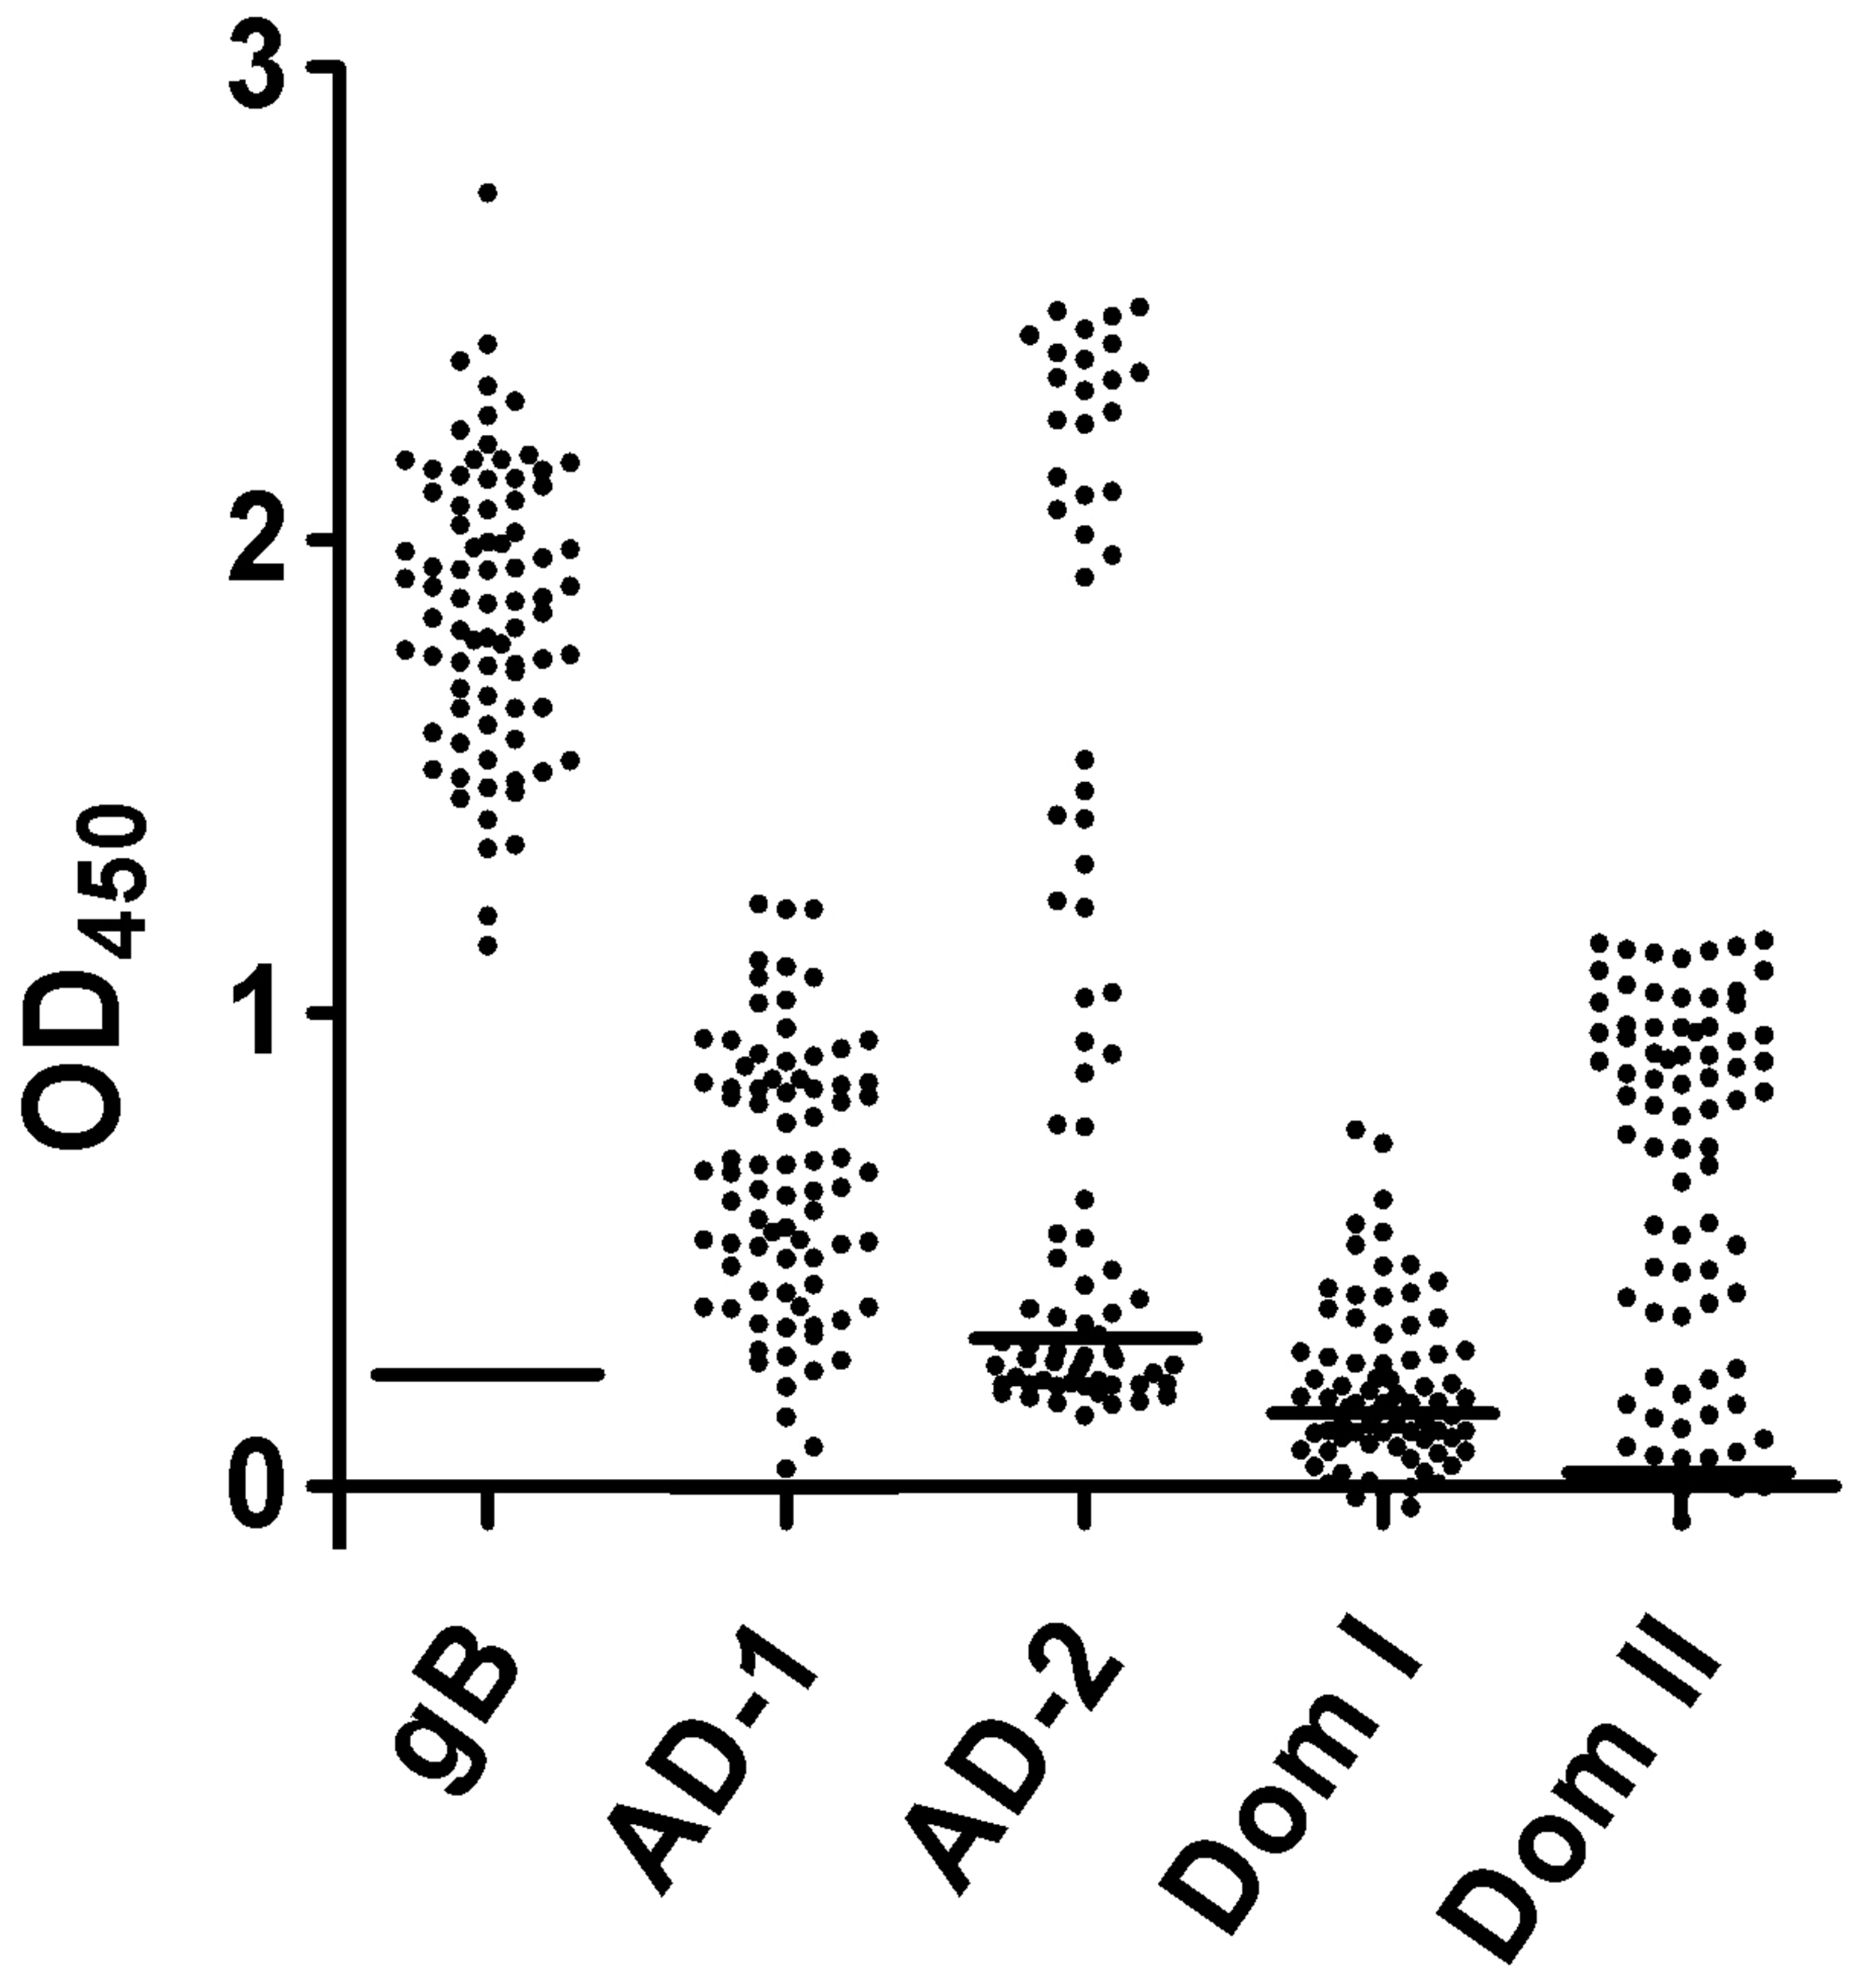 Recognition of the antigenic domains of gB by human sera.